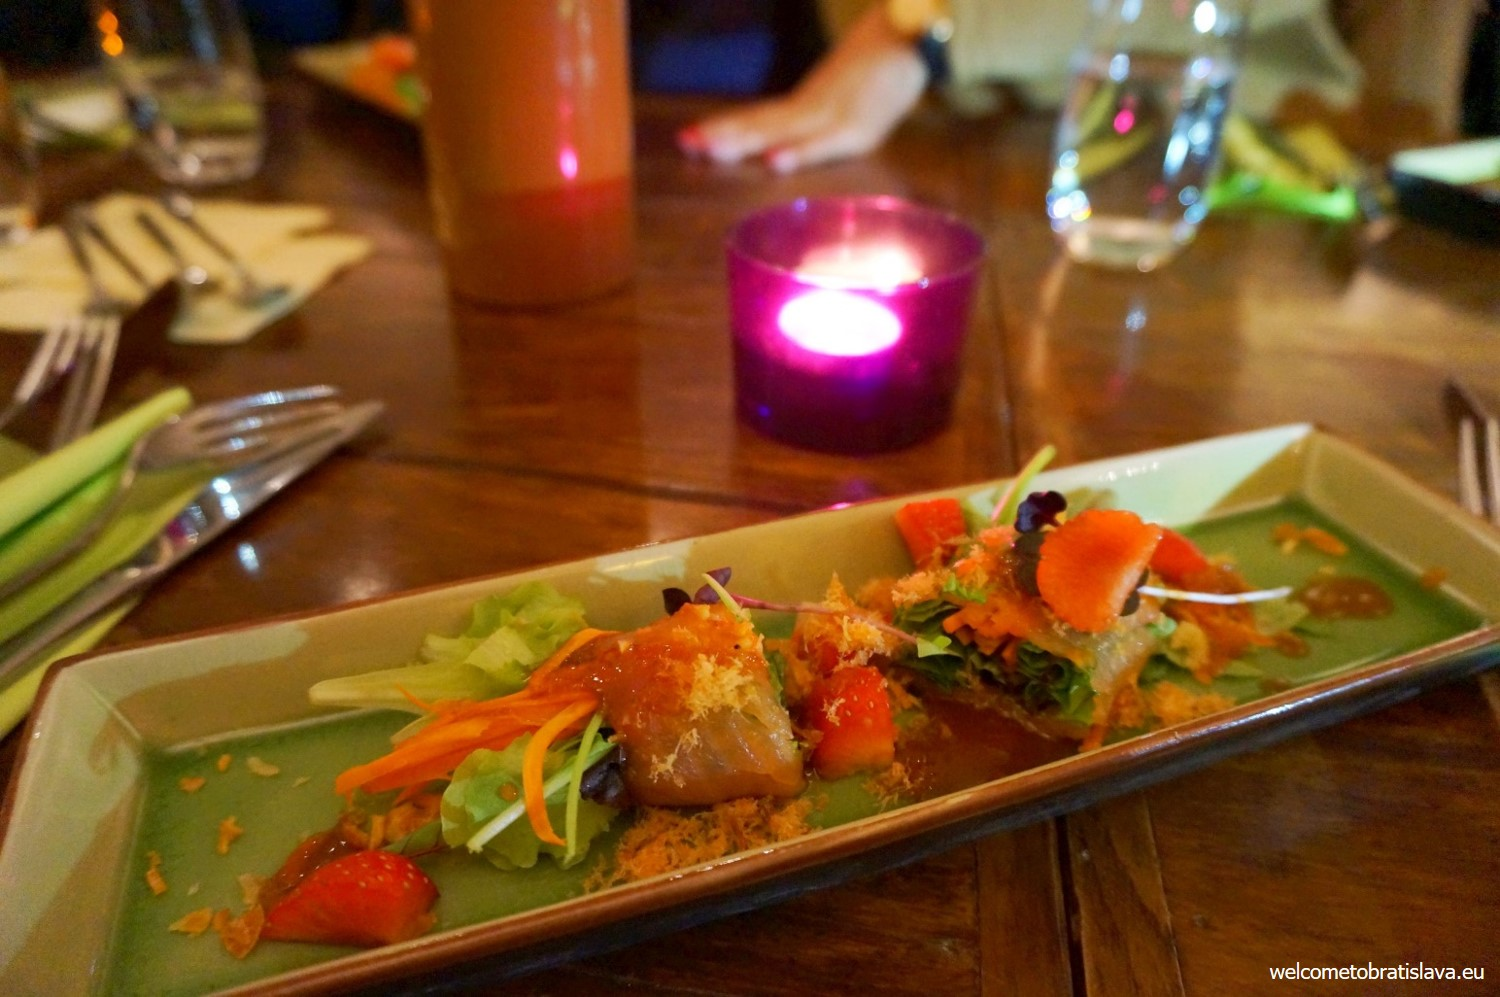 Smoked salmon rolls served with herbs, strawberries and tom yam honey